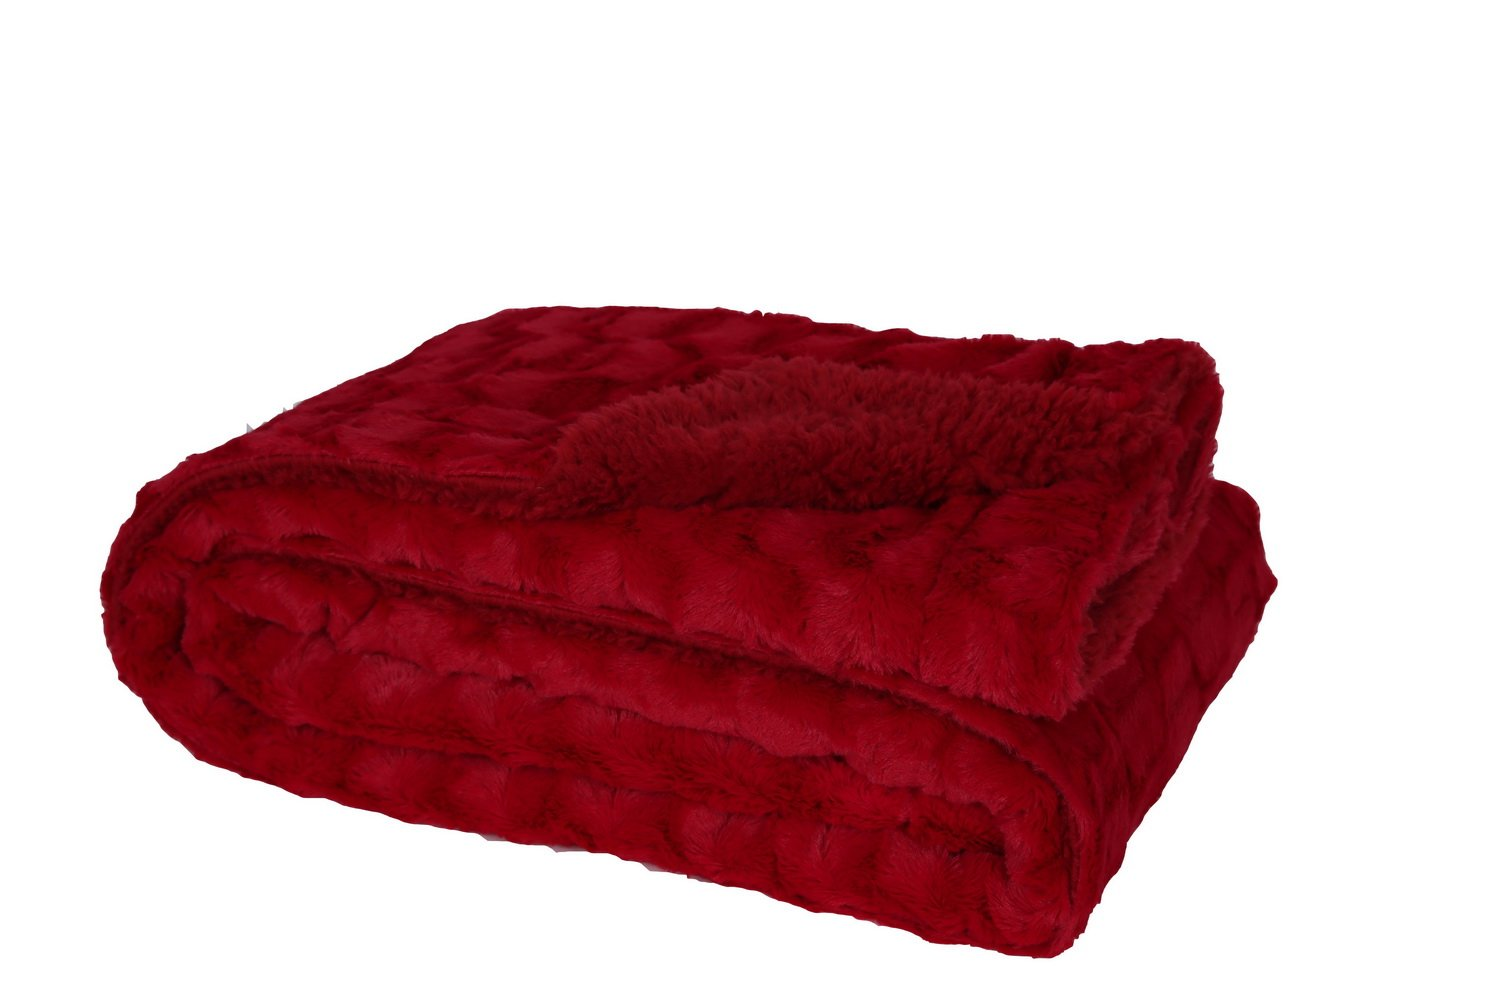 HappyCare Textiles Embossed Faux Fur Rev To Sherpa Throw Blanket, Burgundy